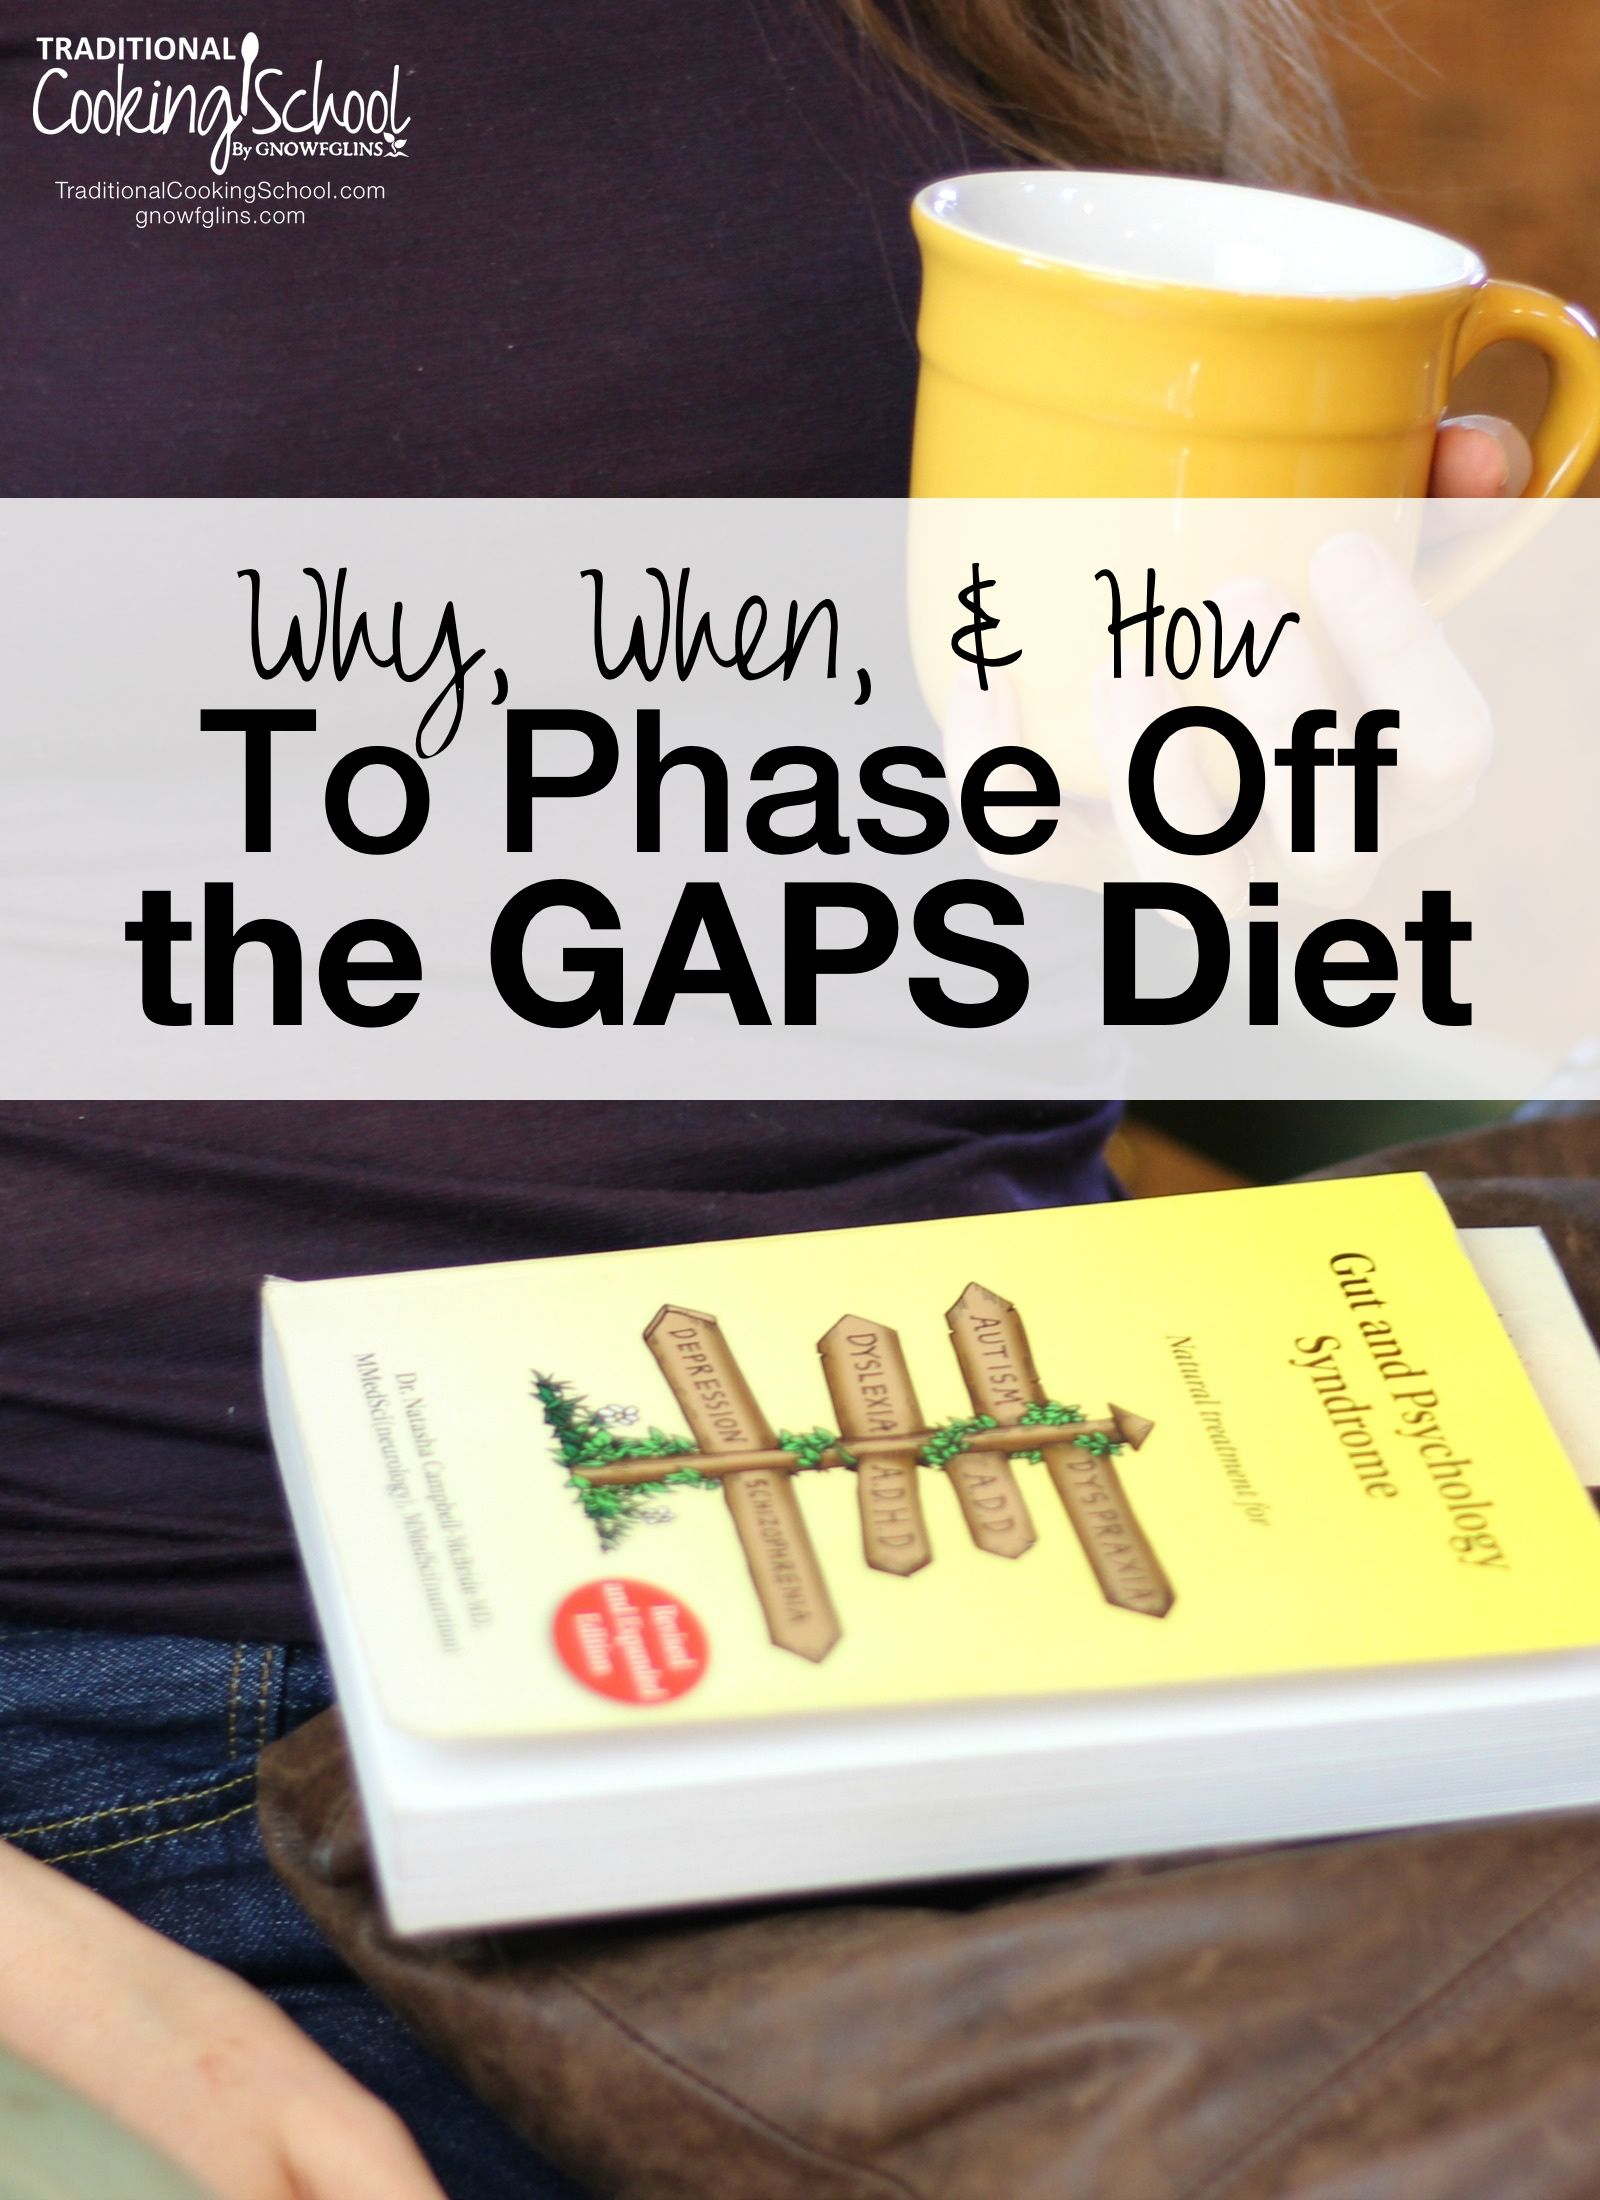 Why Everyone is Talking about the GAPS Diet